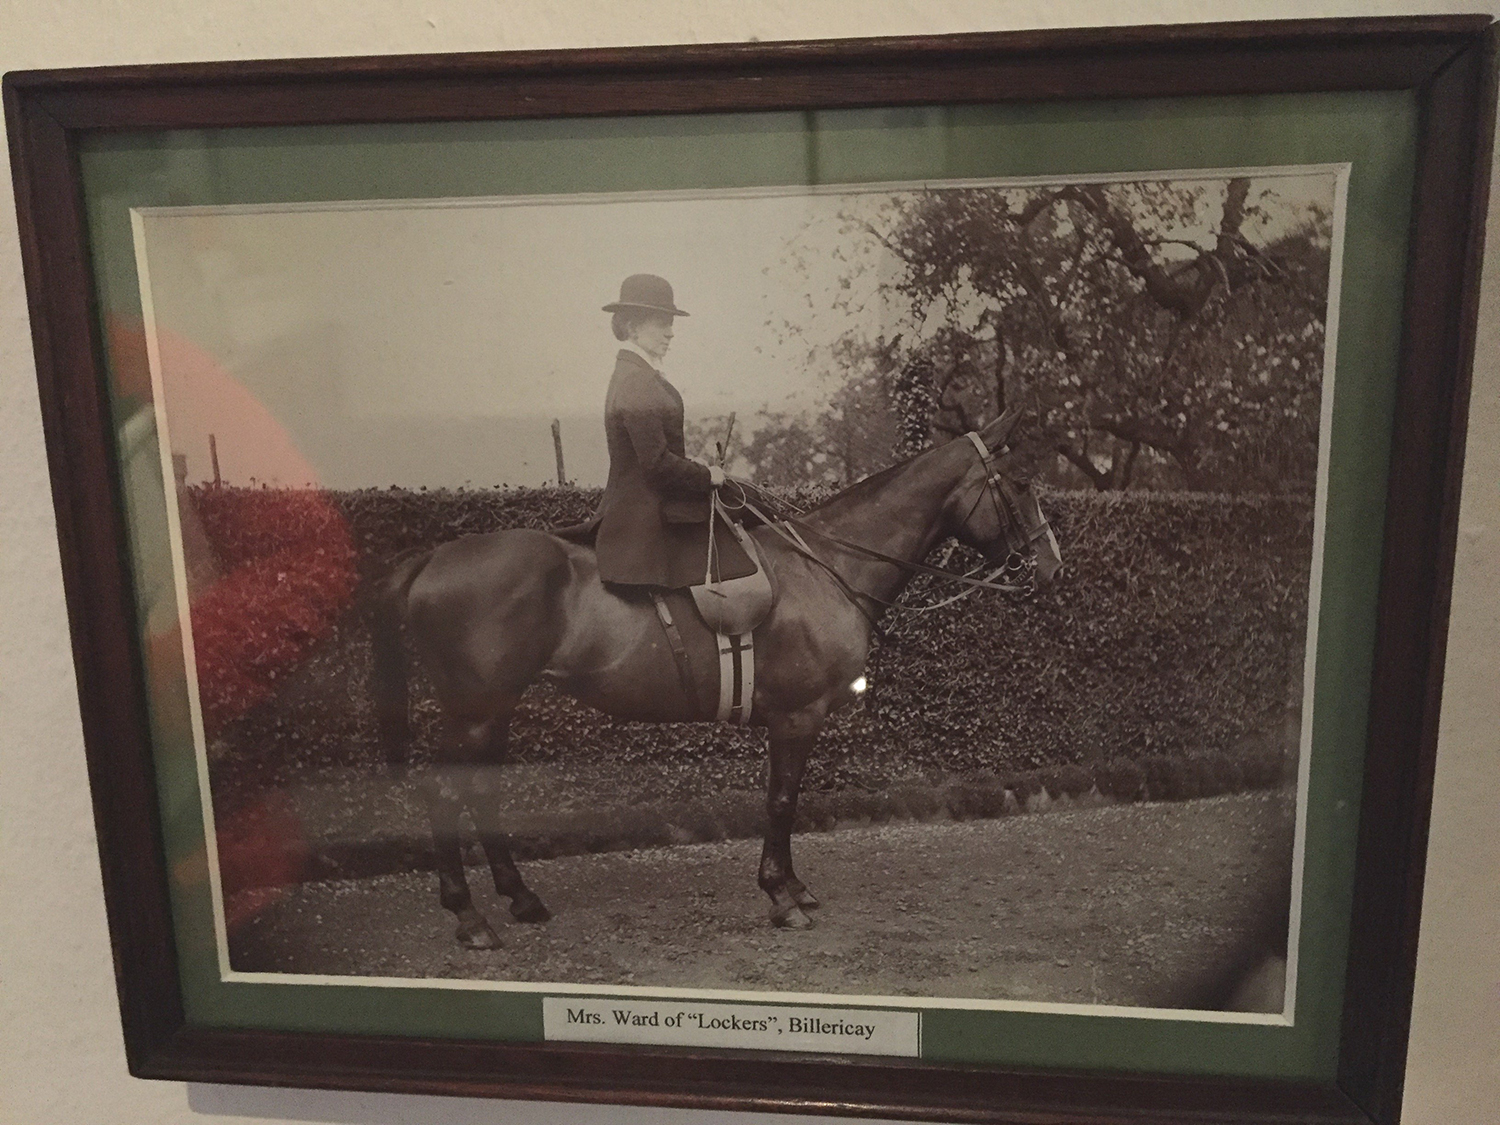 Photo: Can be seen on display in the Cater Museum, 74 High Street, Billericay